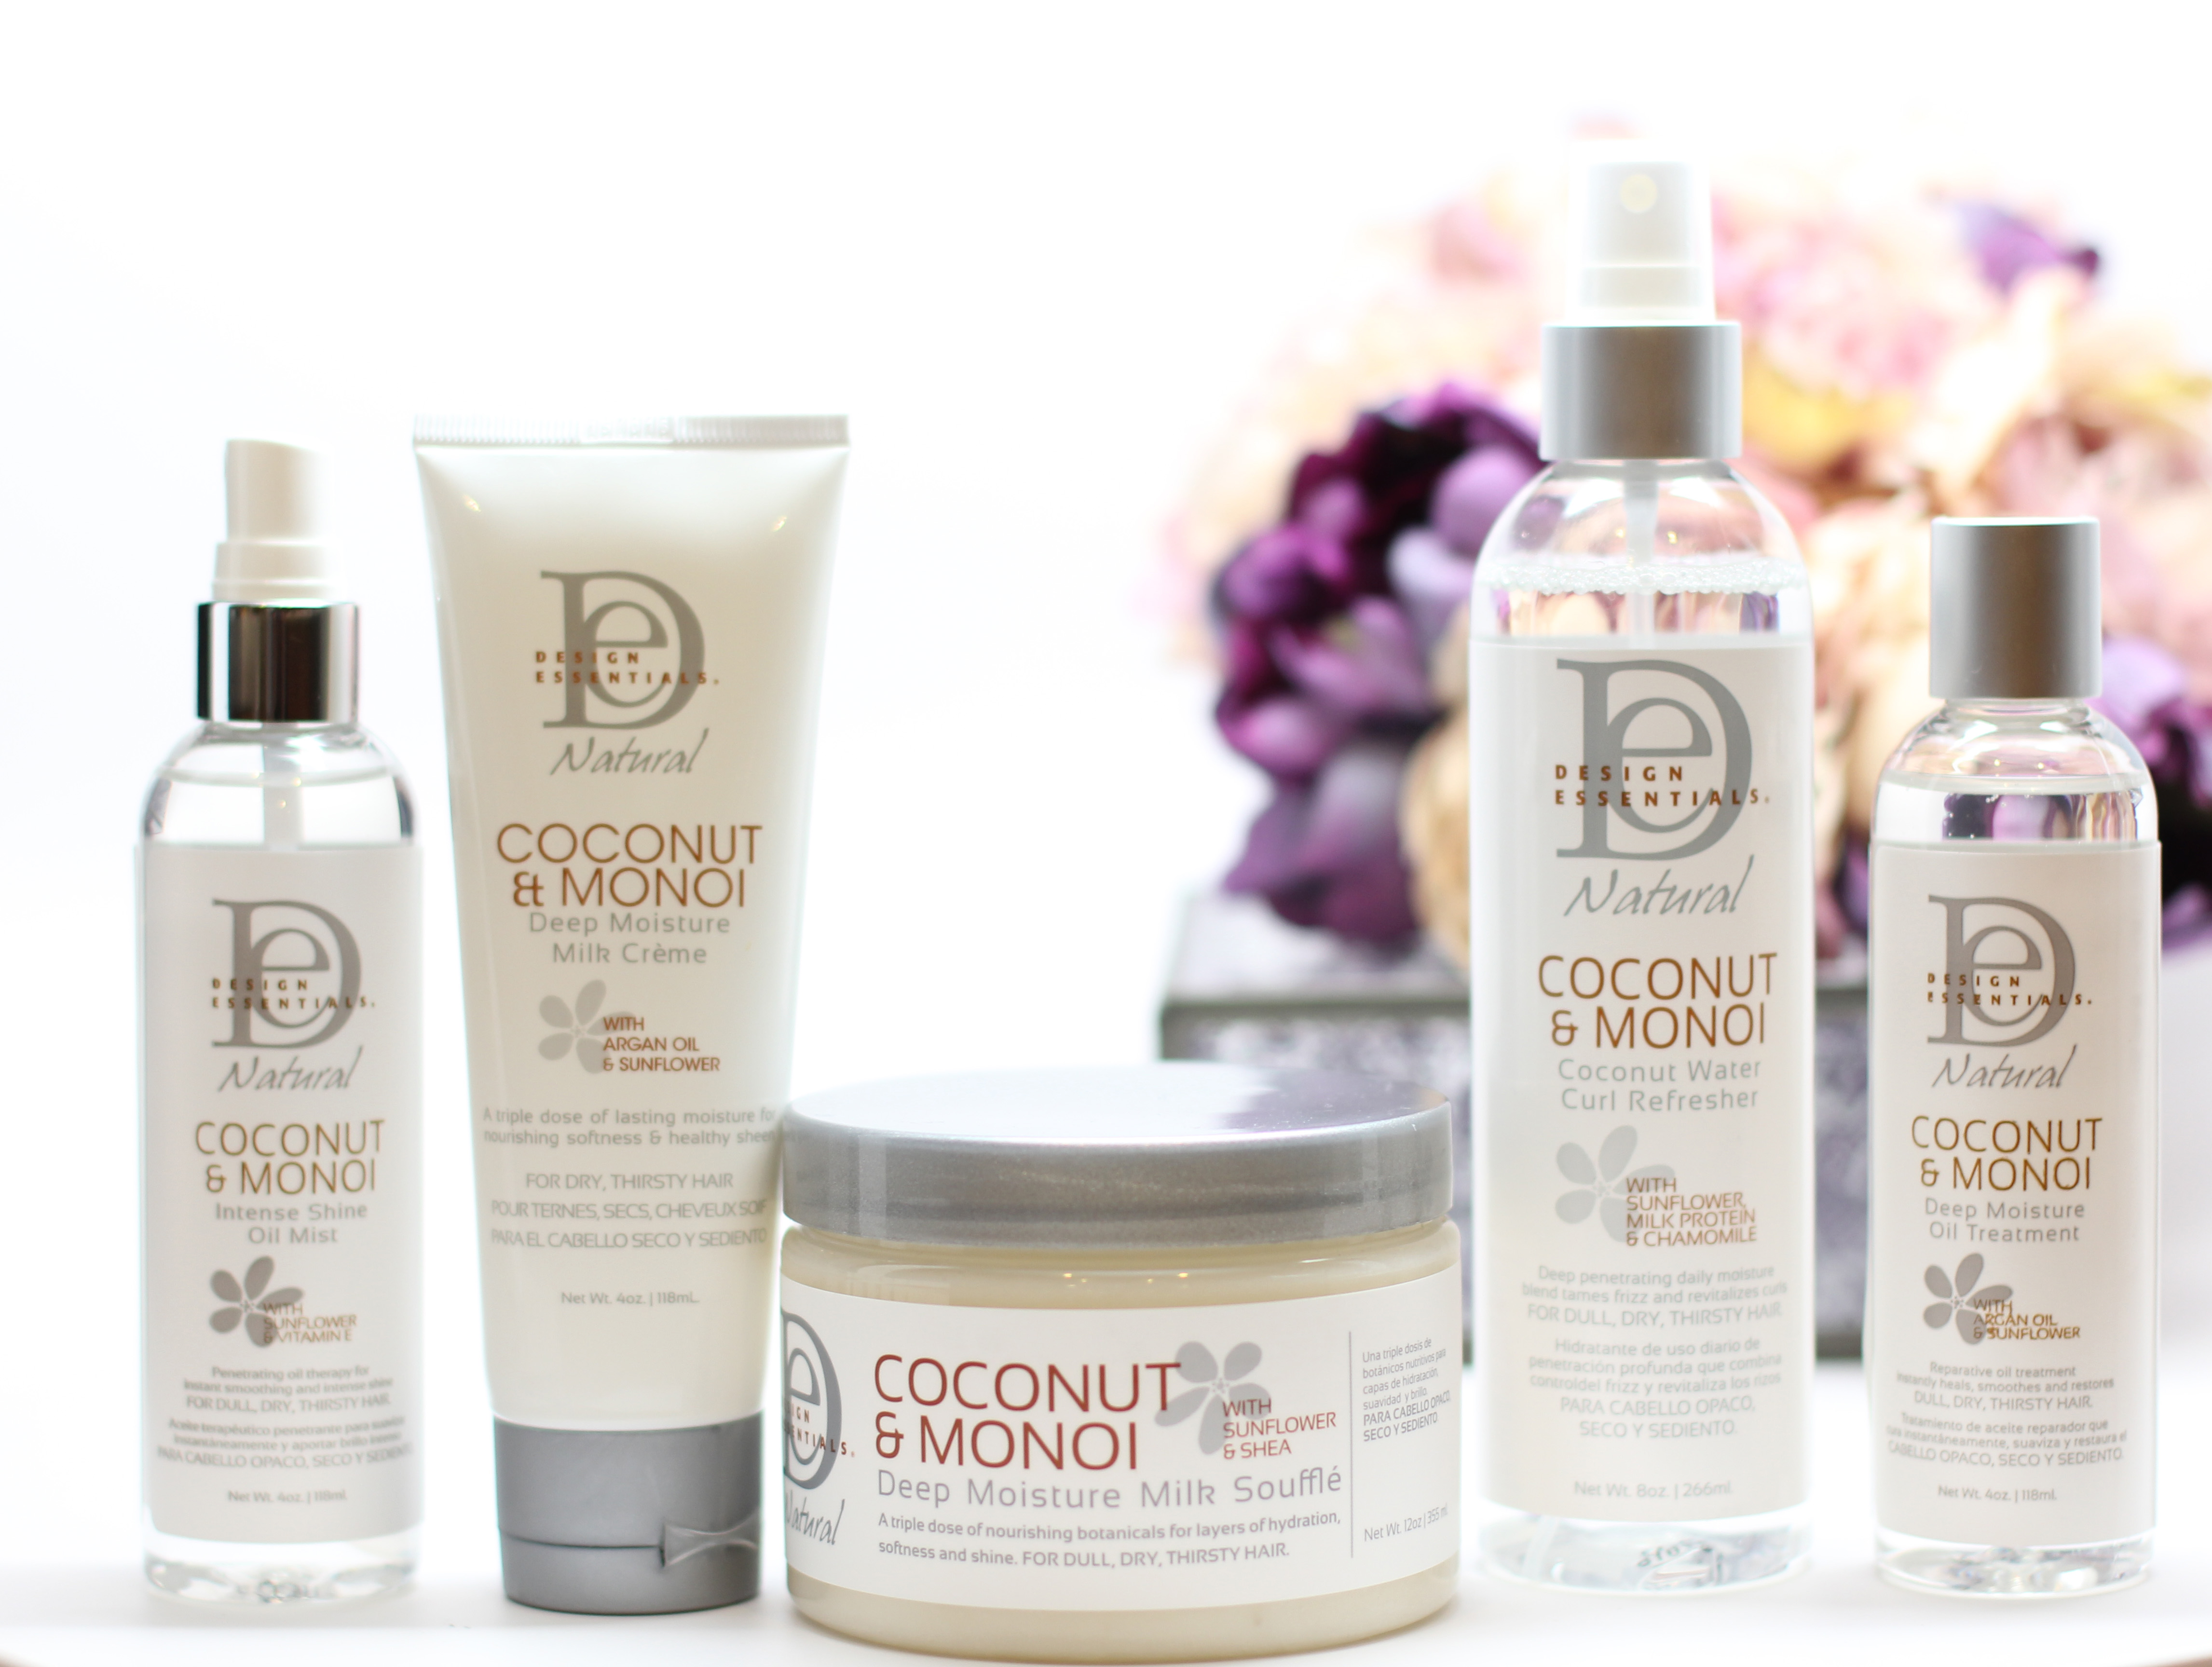 Design Essentials Natural Leave In Conditioner Reviews: Design Essentials Coconut 6 Monoi Line - Justina7s Gemsrh:justinasgems.com,Design